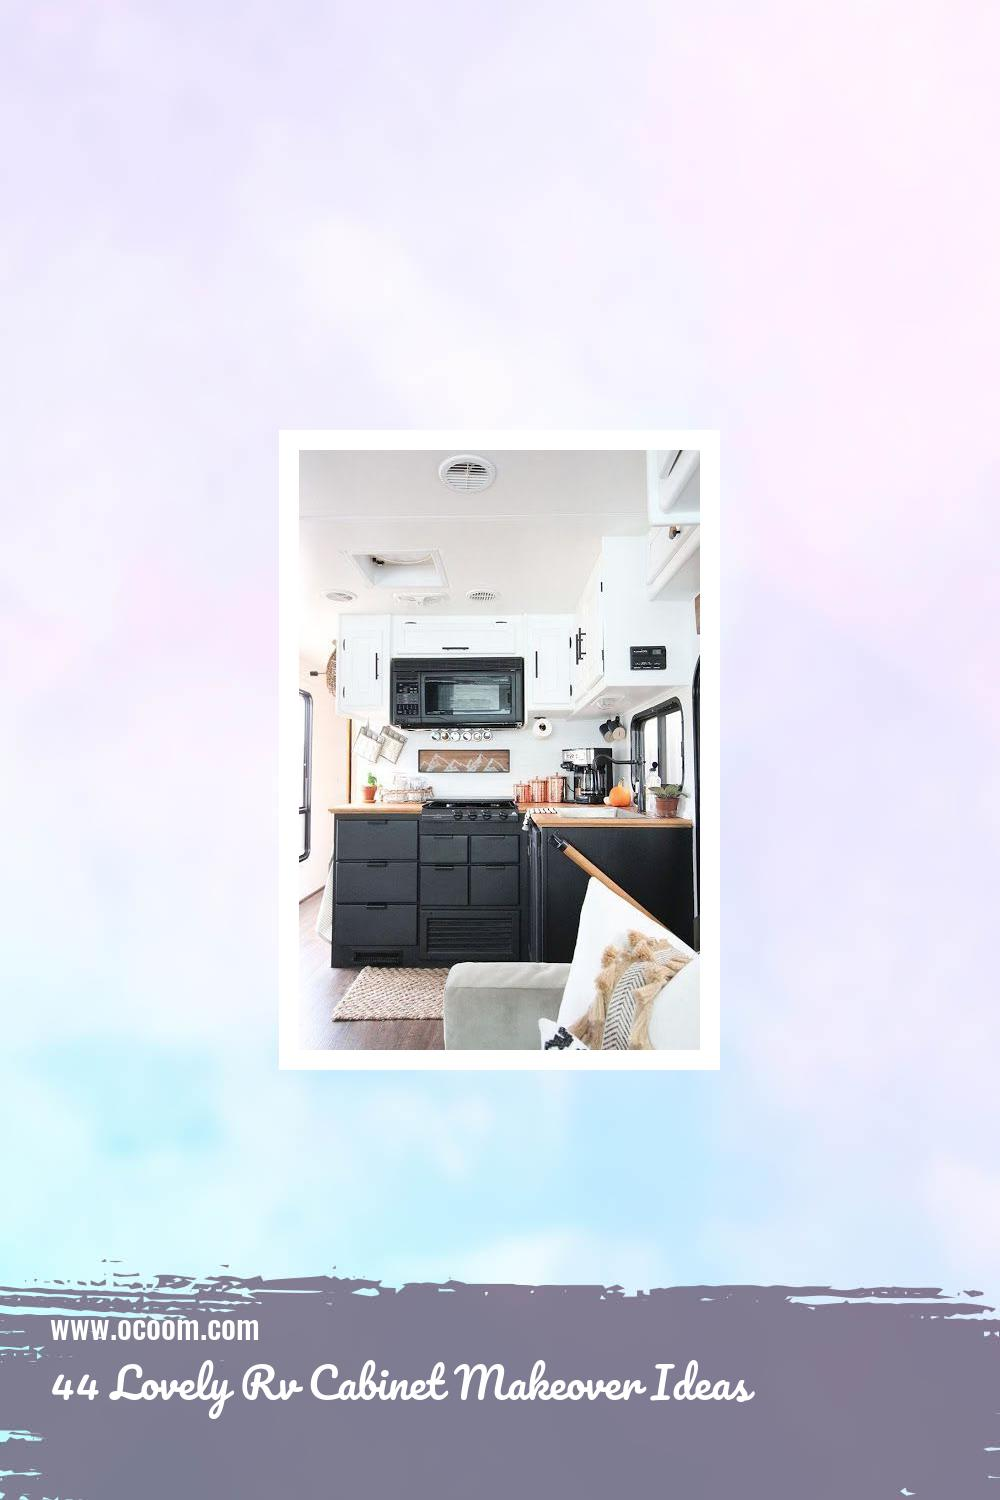 44 Lovely Rv Cabinet Makeover Ideas 14